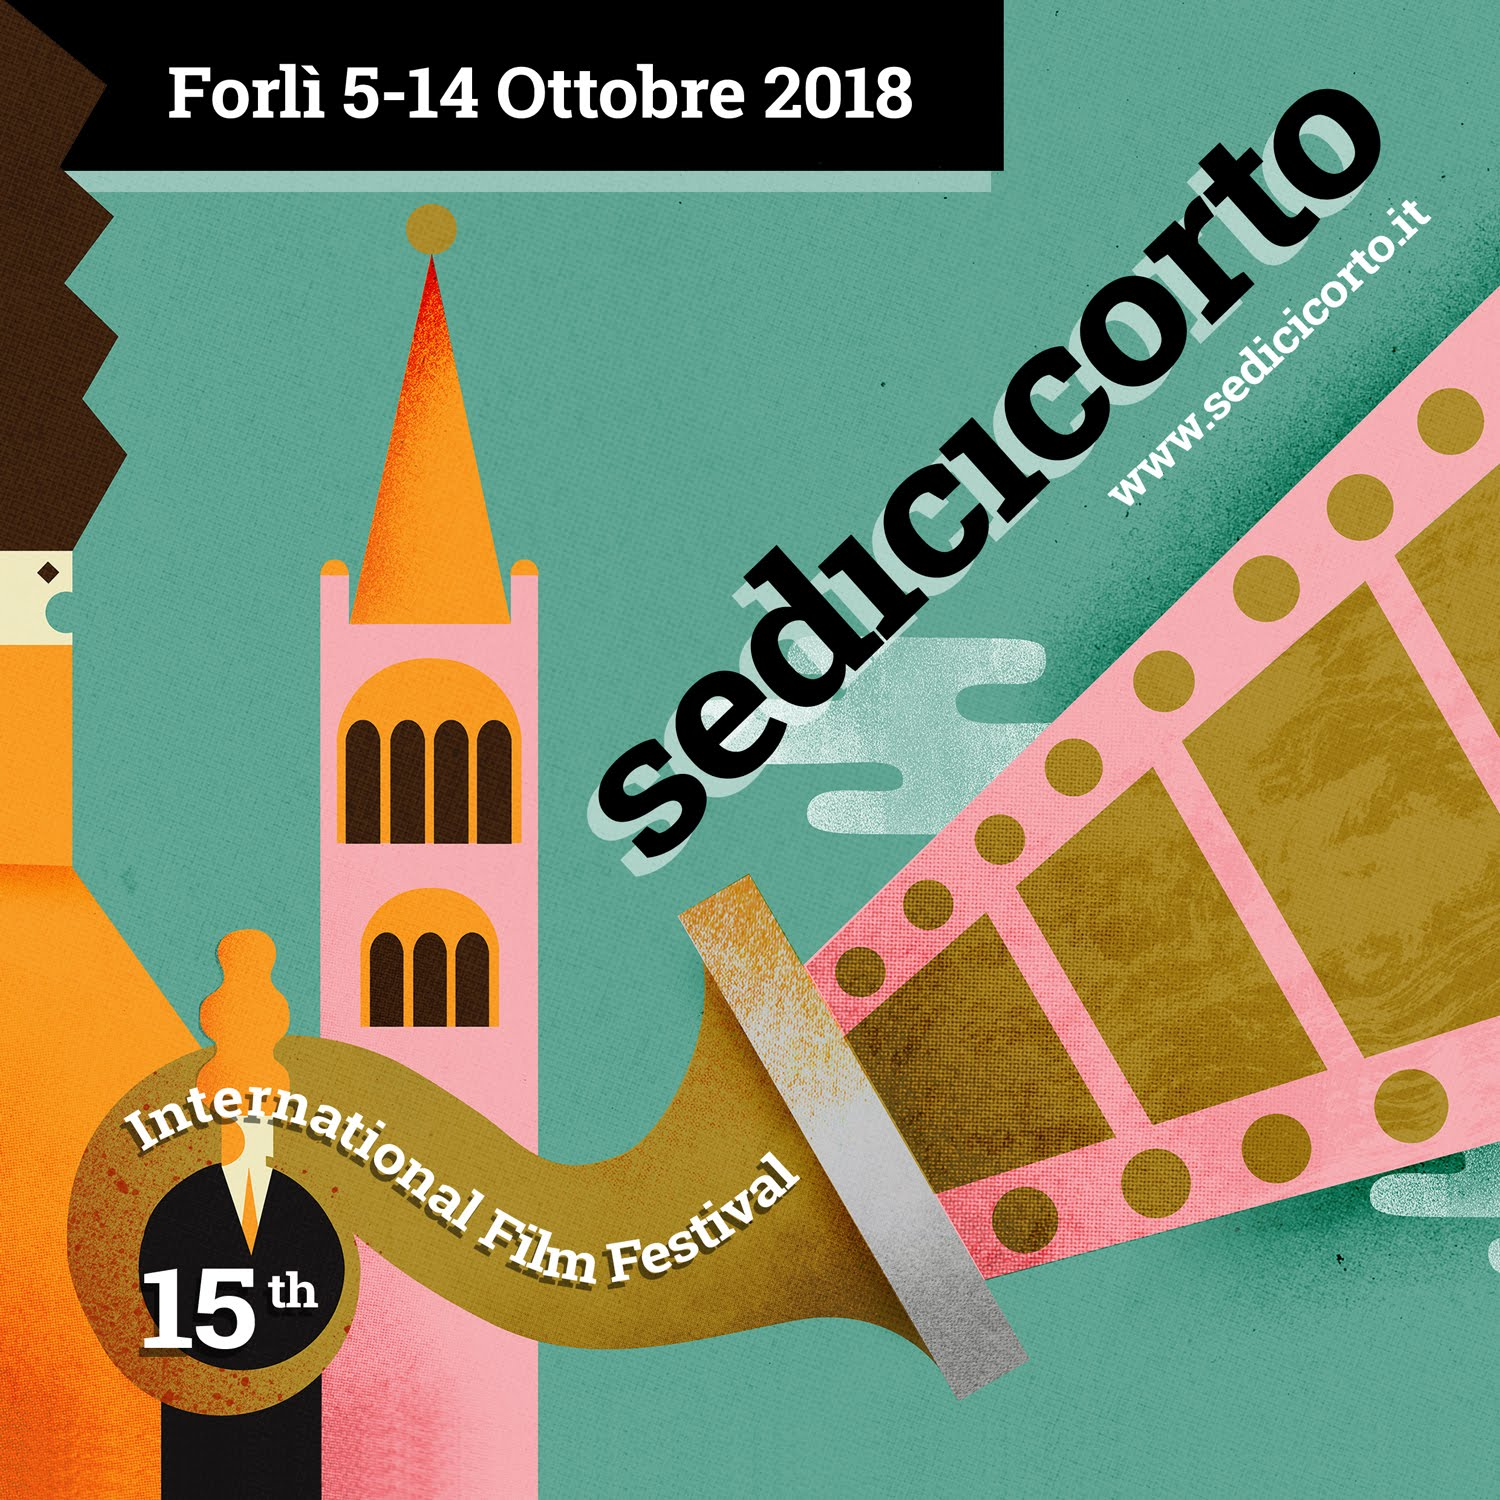 15° Sedicicorto International Film Festival